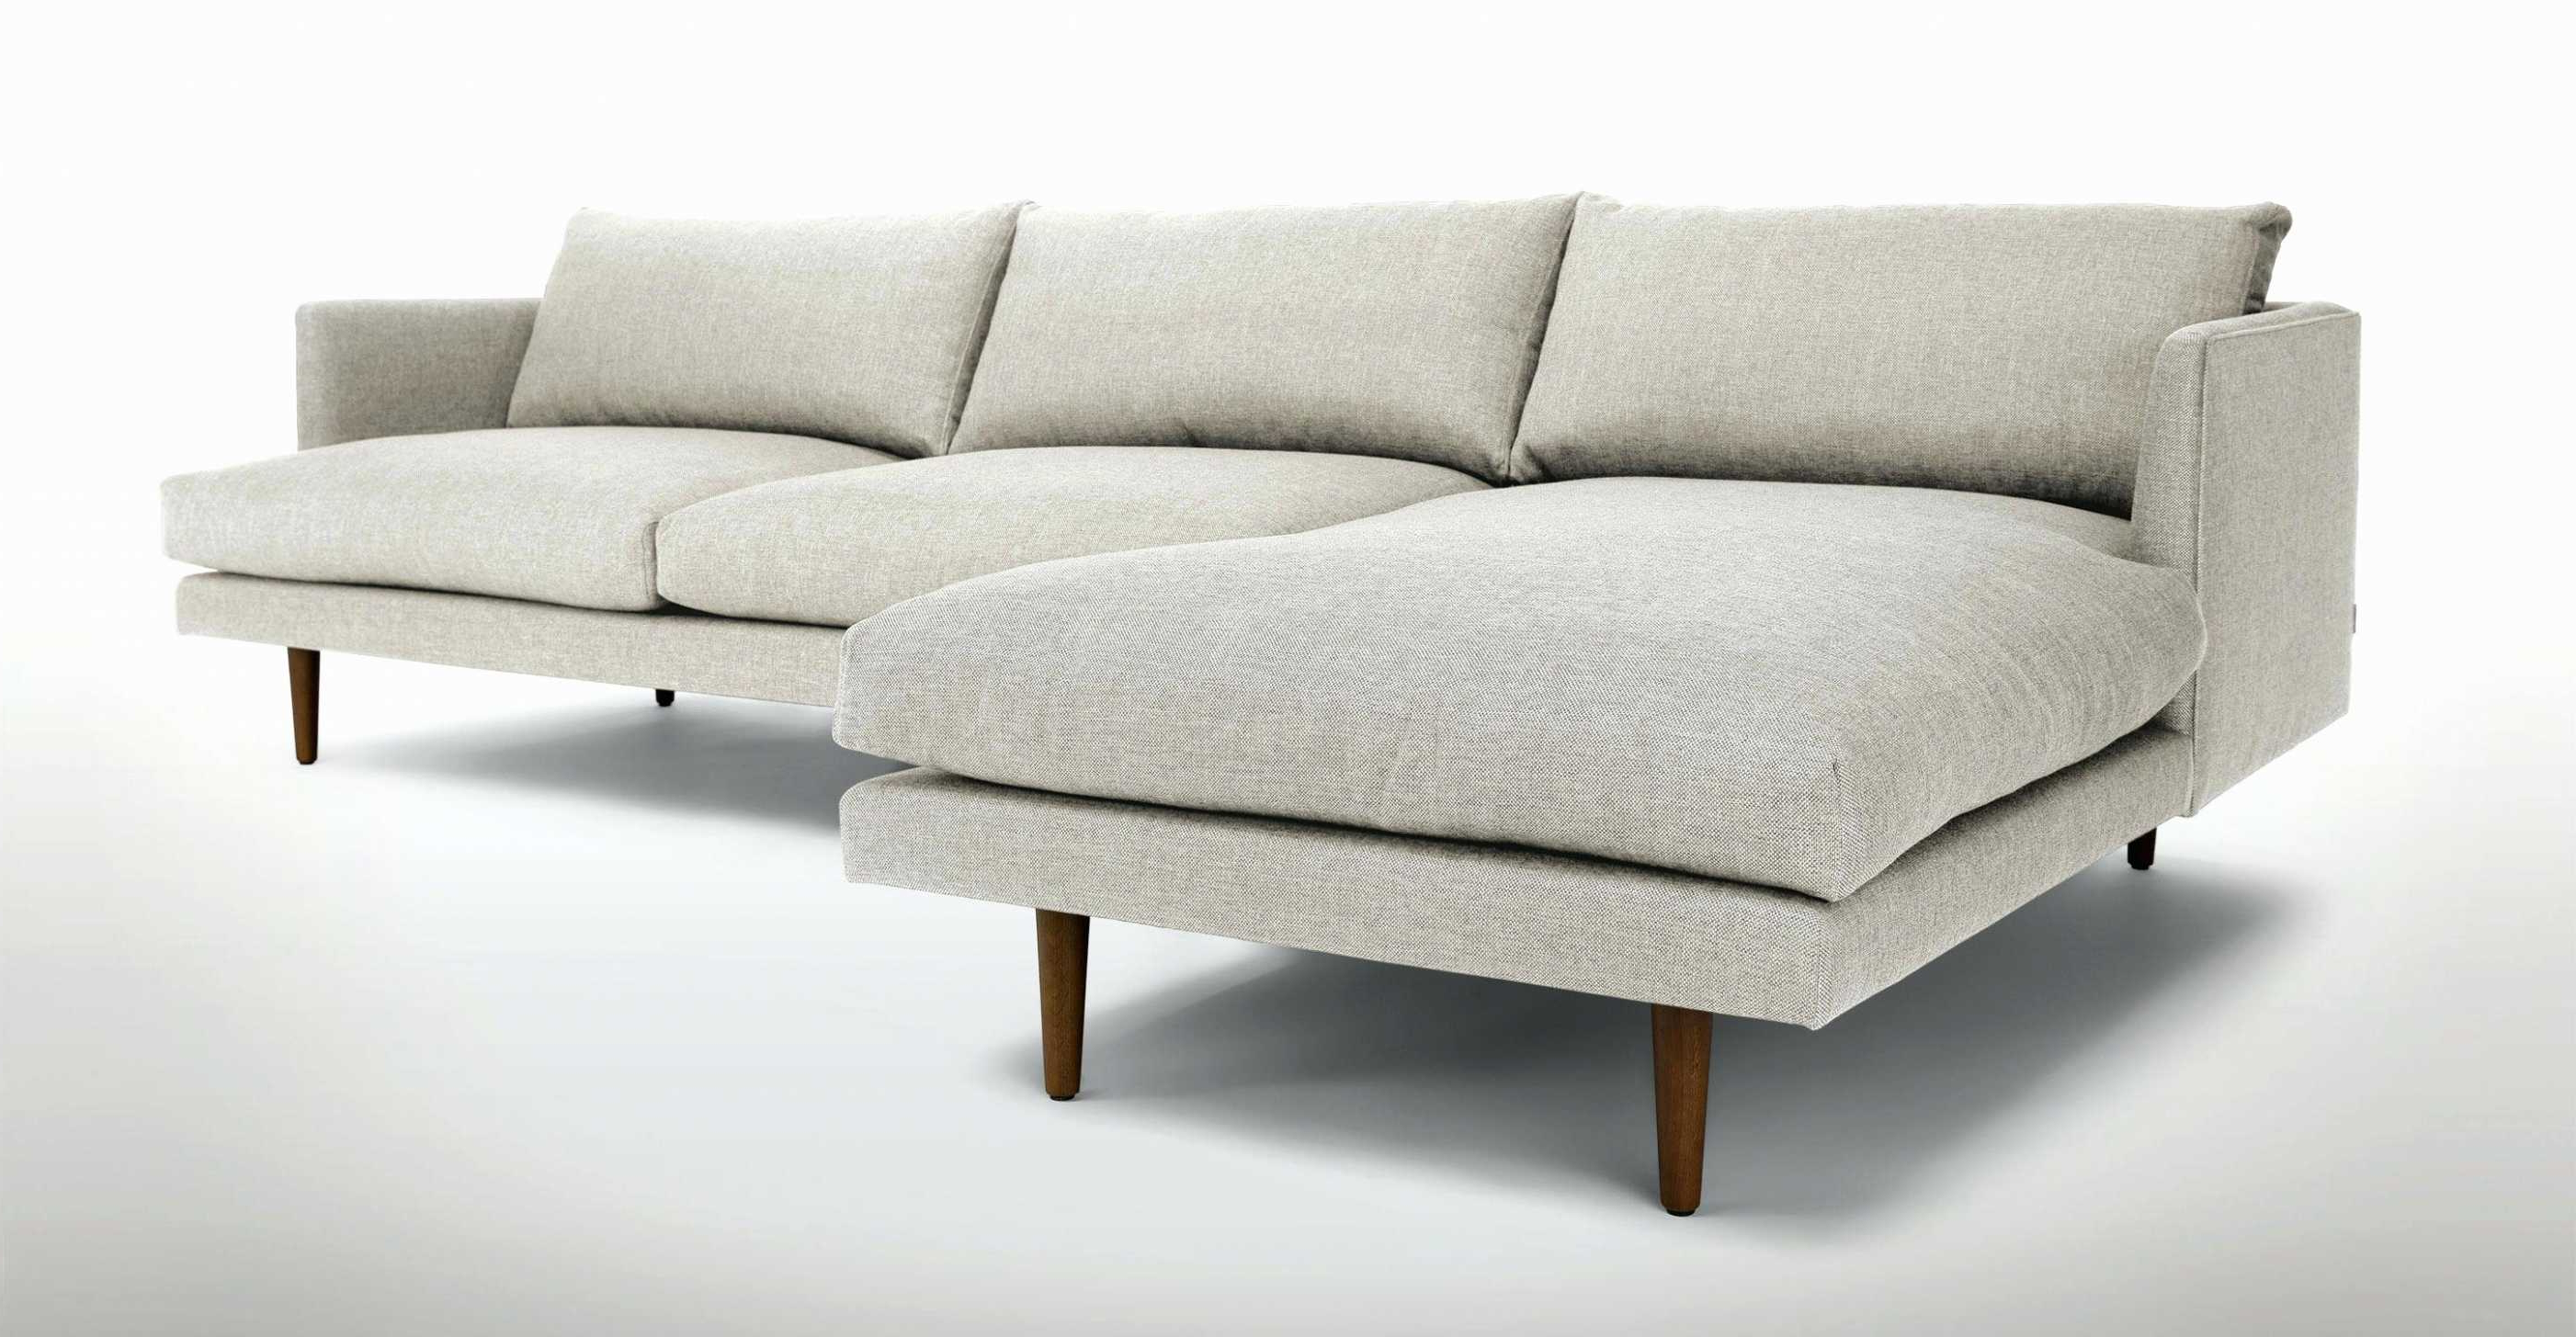 Sofas asturias Dwdk sofa Segunda Mano asturias Great Latest sofas Camas after sofa Cama